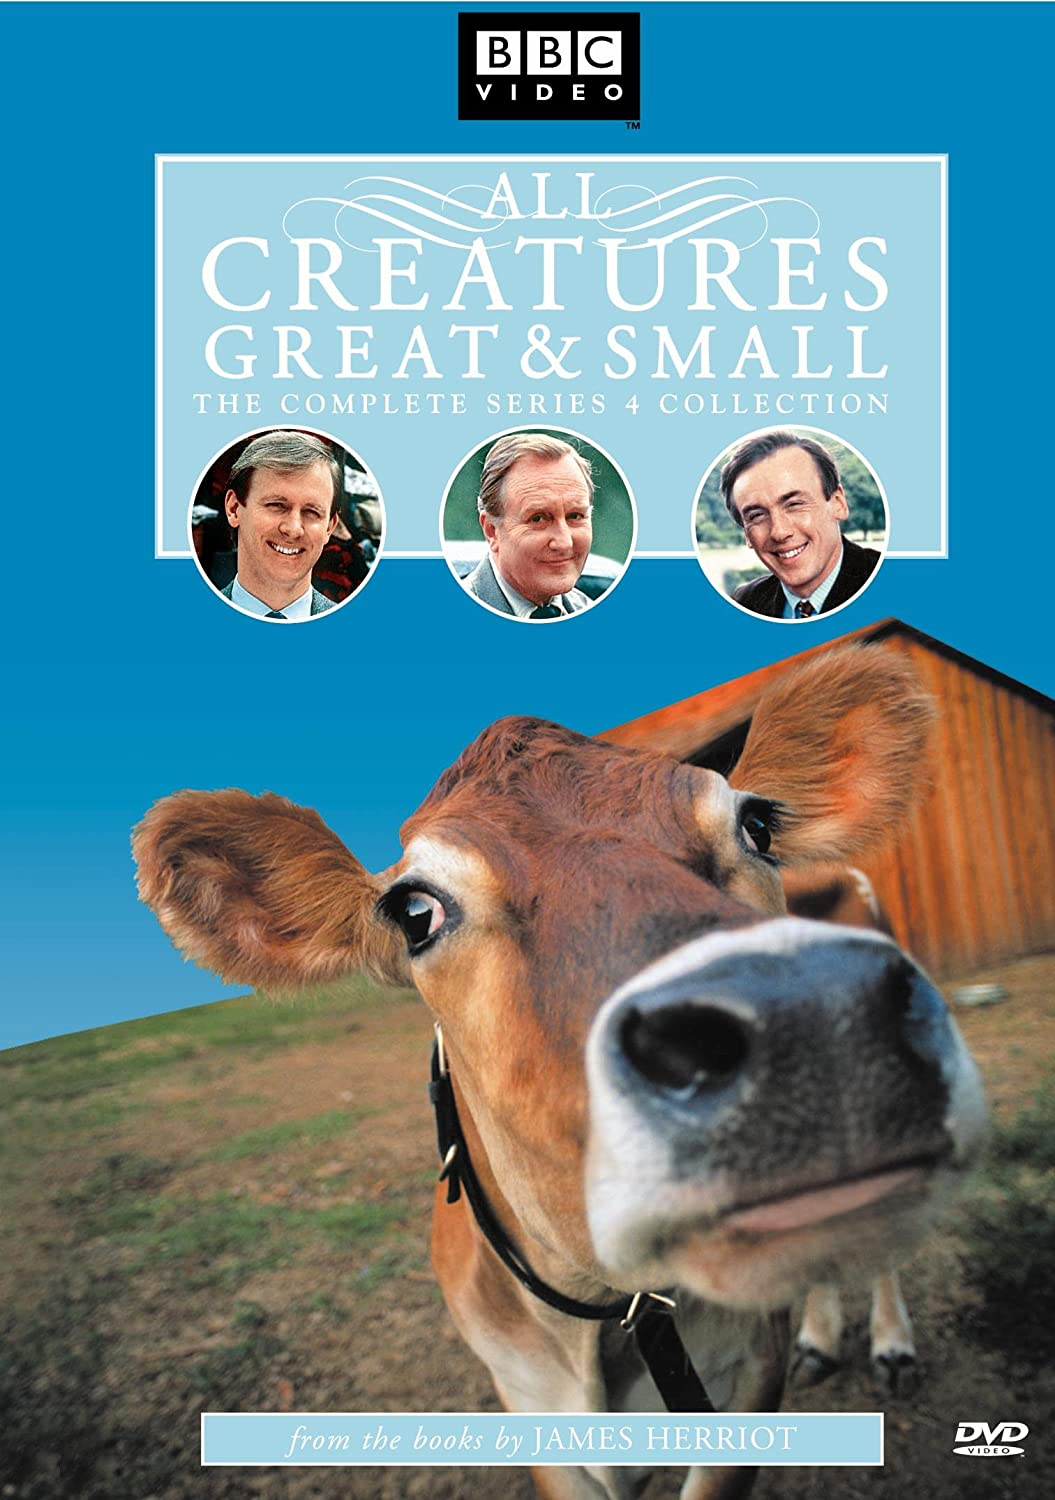 All Creatures Great & Small - The Complete Series 4 Collection